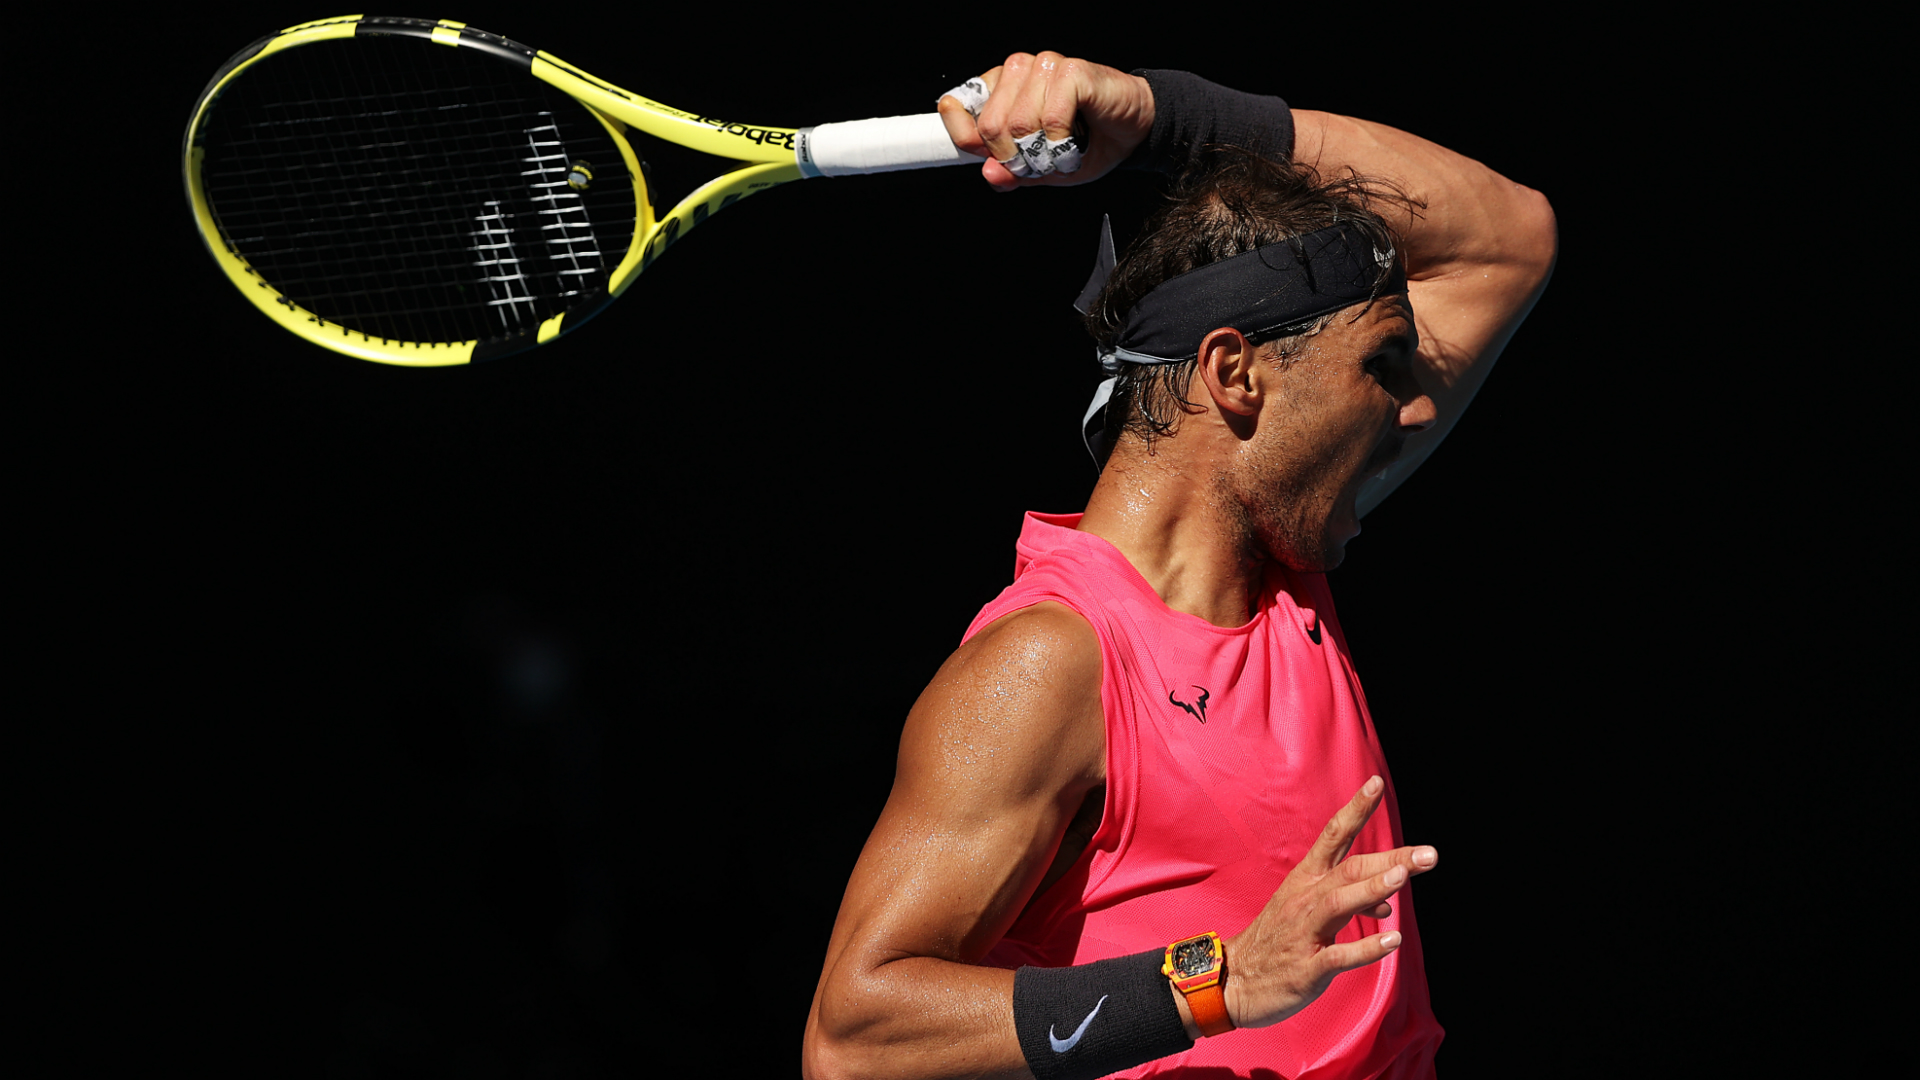 Australian Open 2020: Rafael Nadal results and form ahead of fourth-round match with Nick Kyrgios